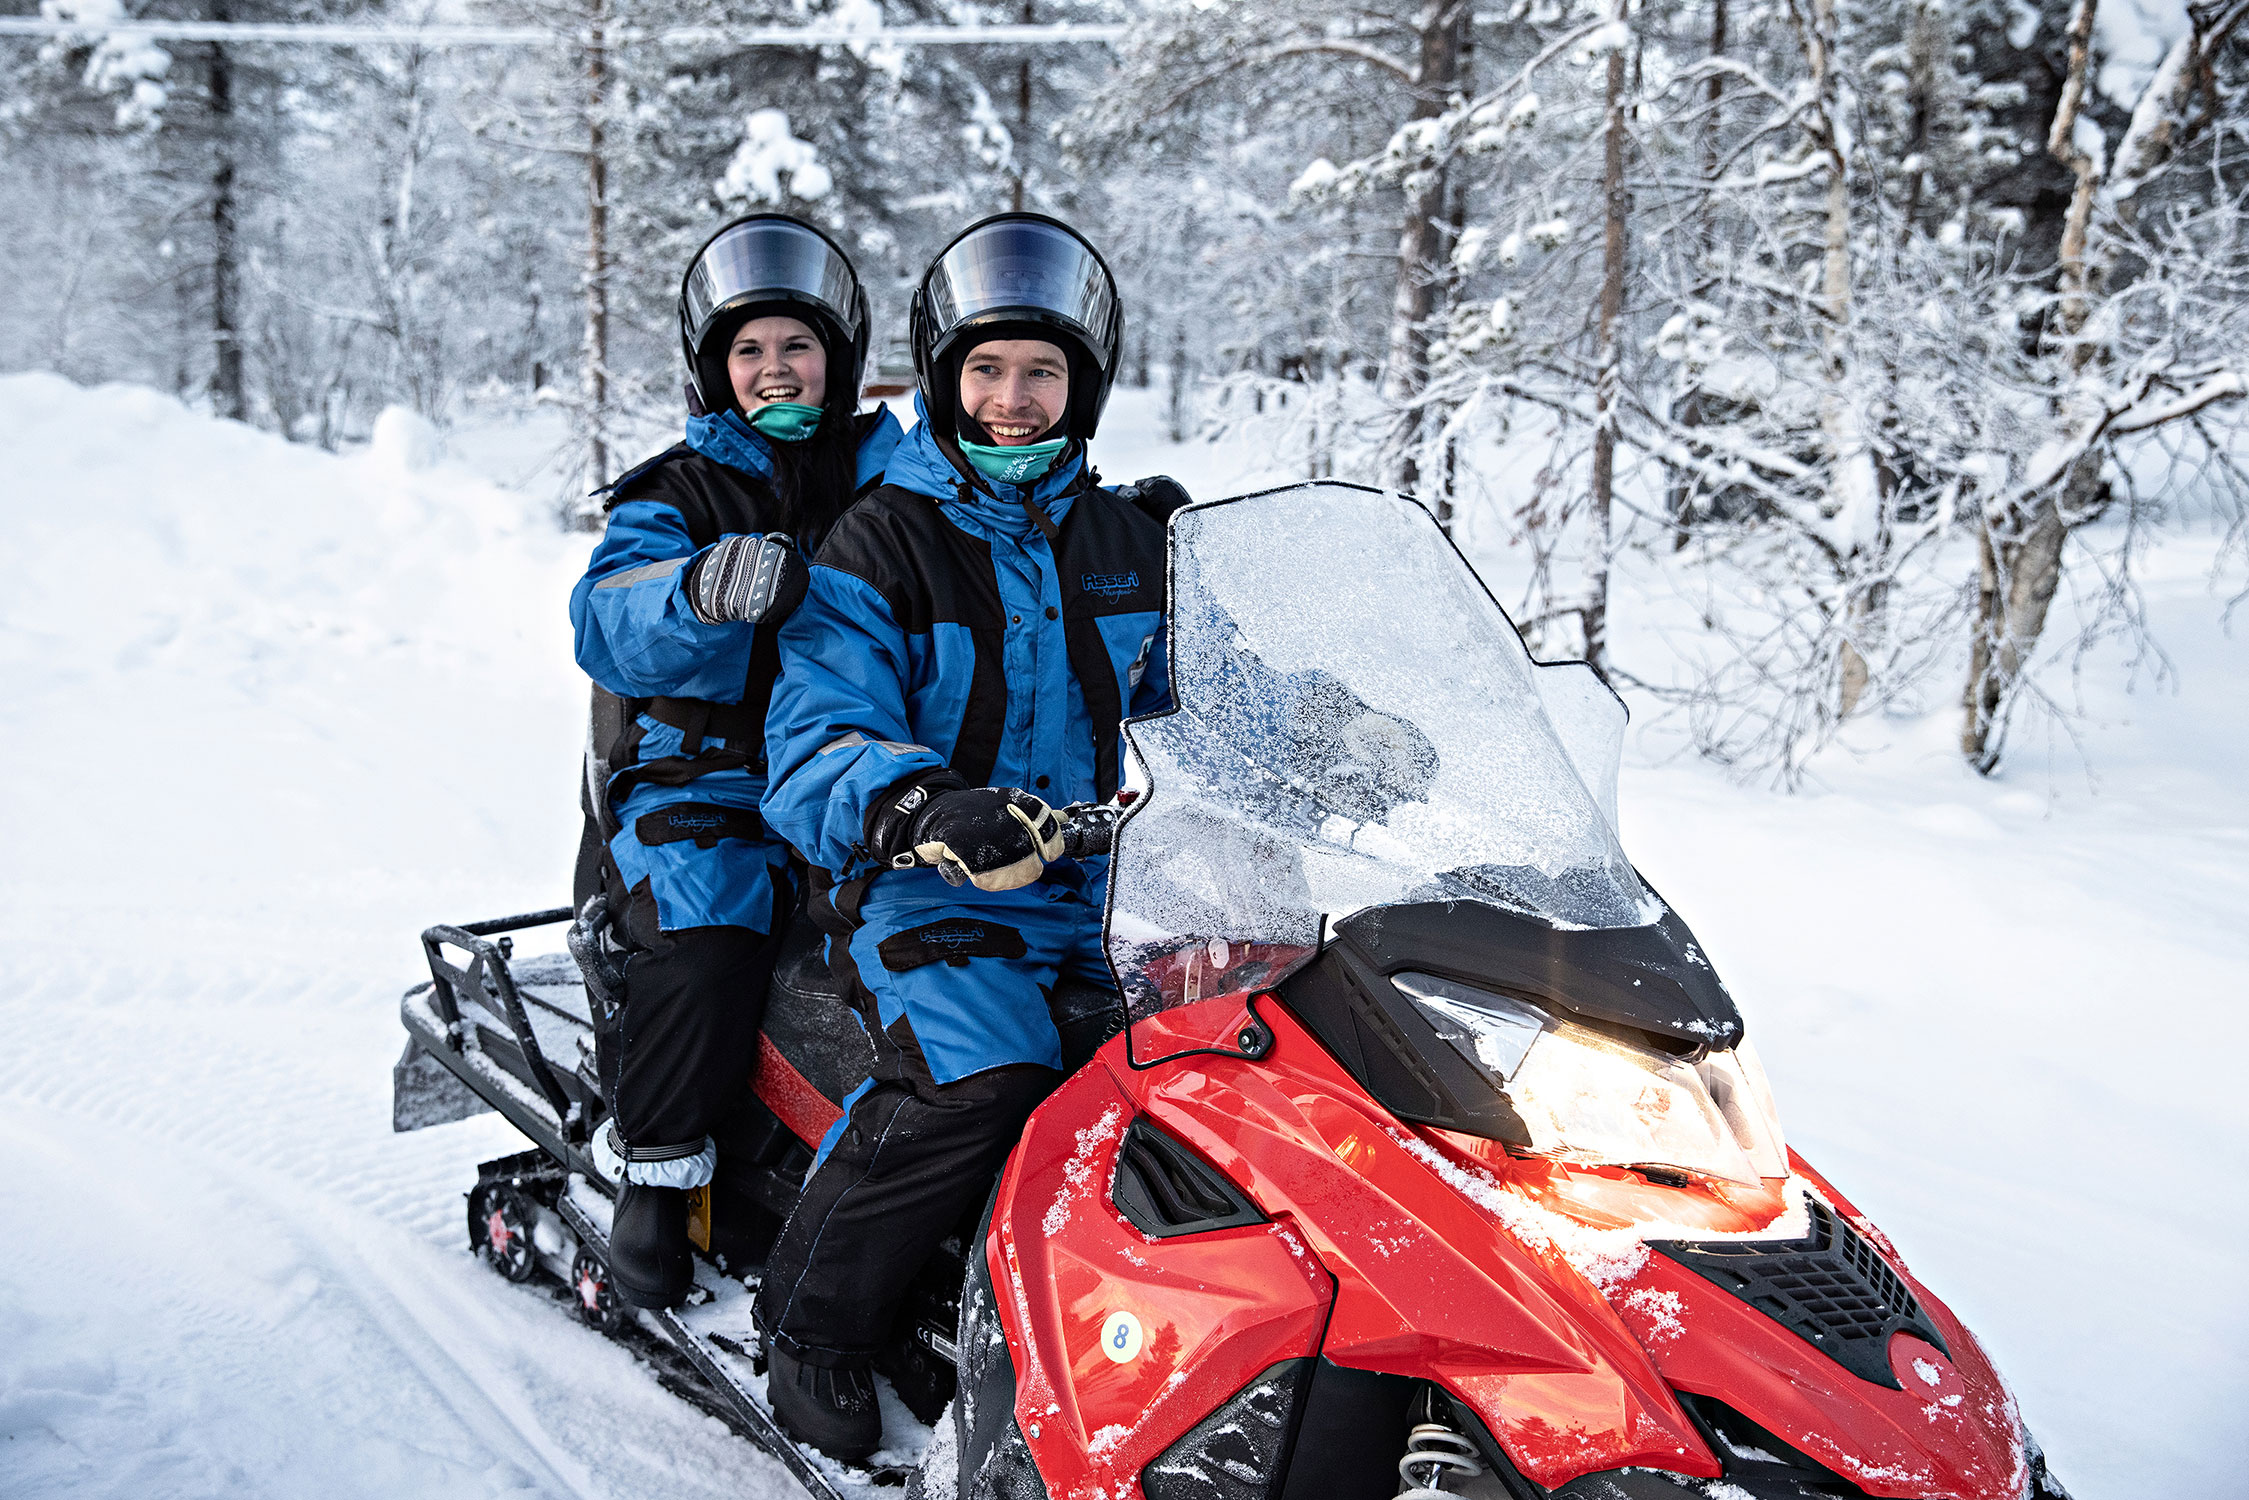 Speed up on a snowmobile to explore the wilderness.